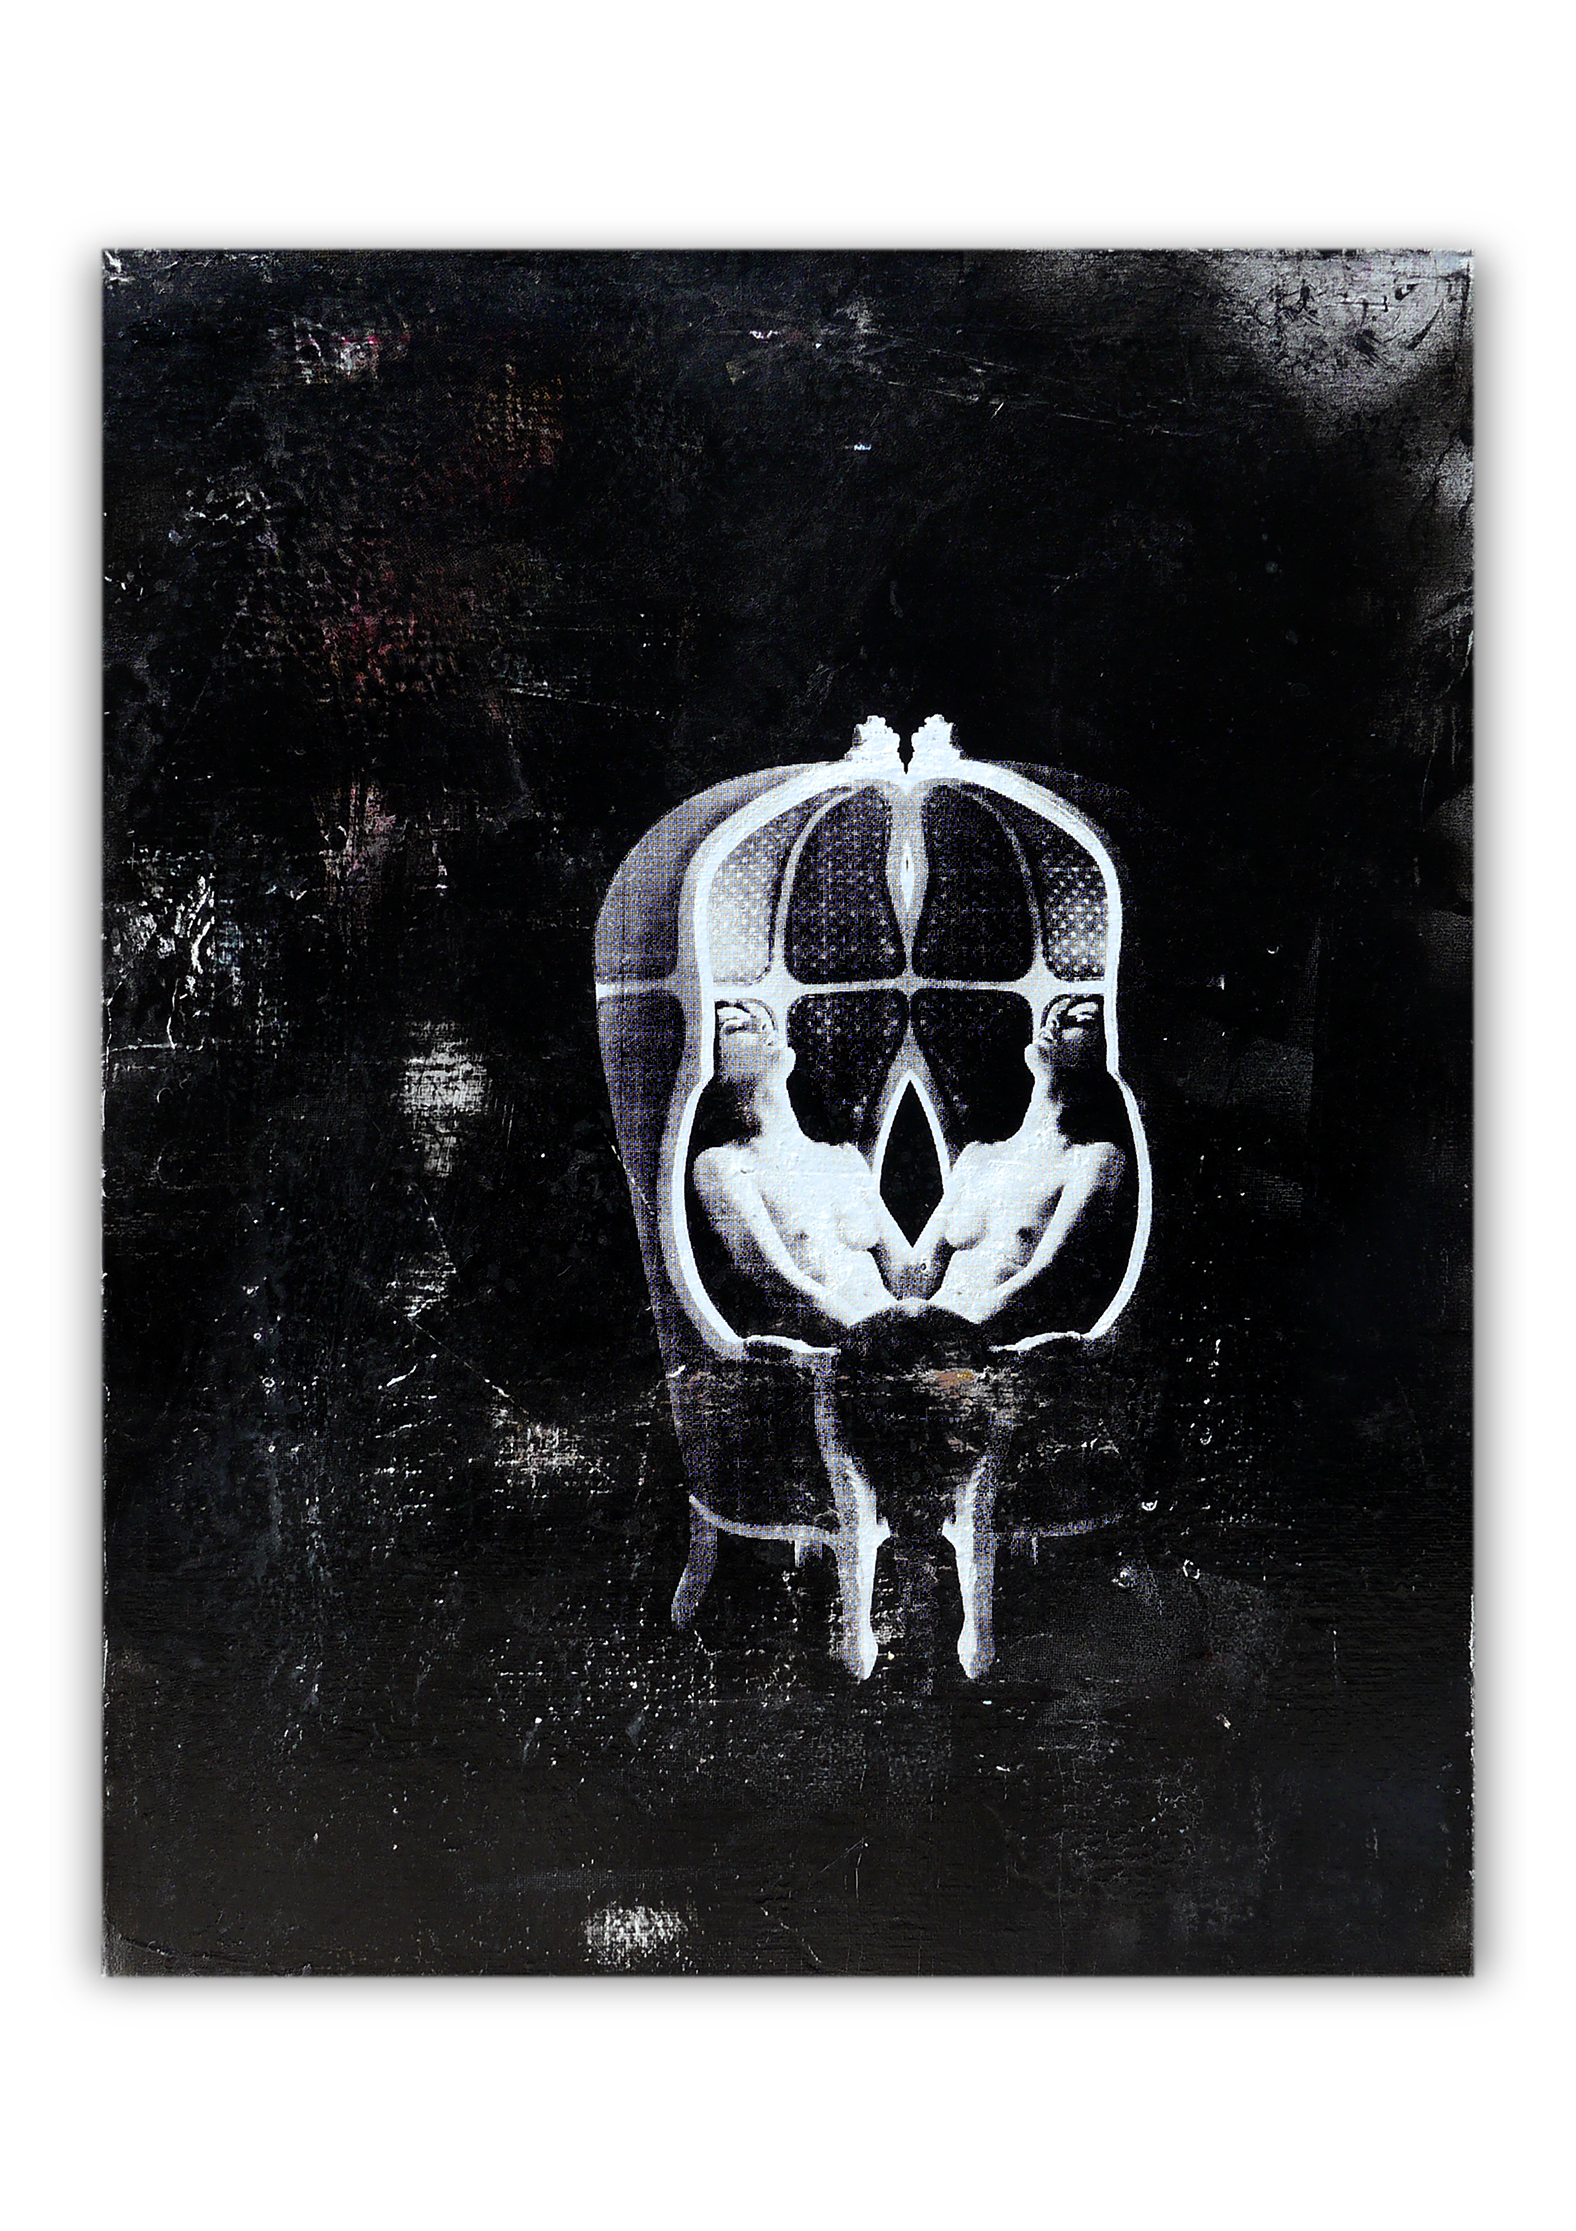 La petite mort | Acrylic, Aerosol spray and Silkscreen ink on canvas . 16 x 20 inches · 40 x 50 cm . MMXX